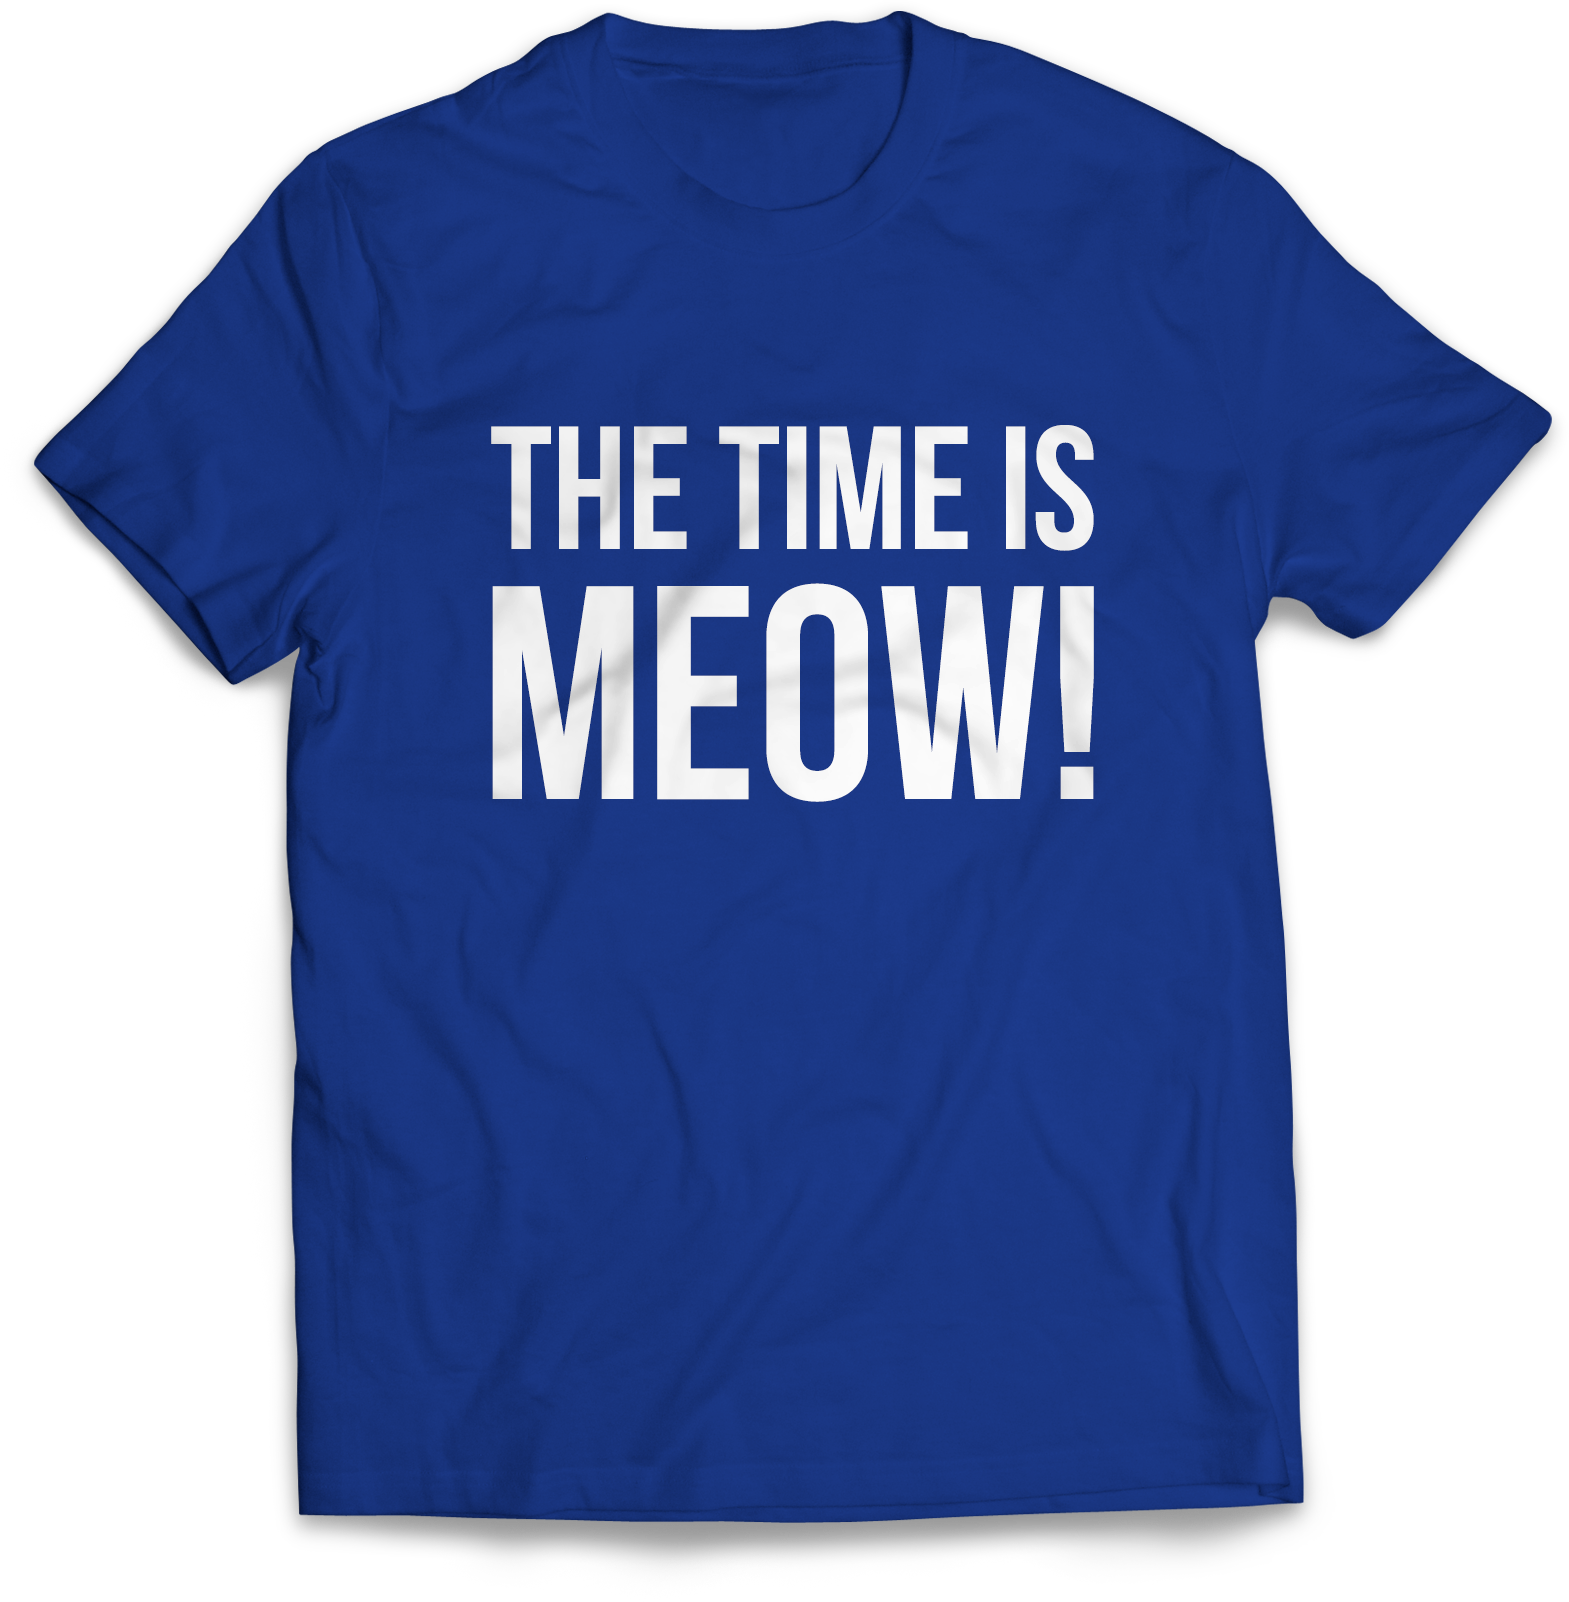 The Time Is Meow!